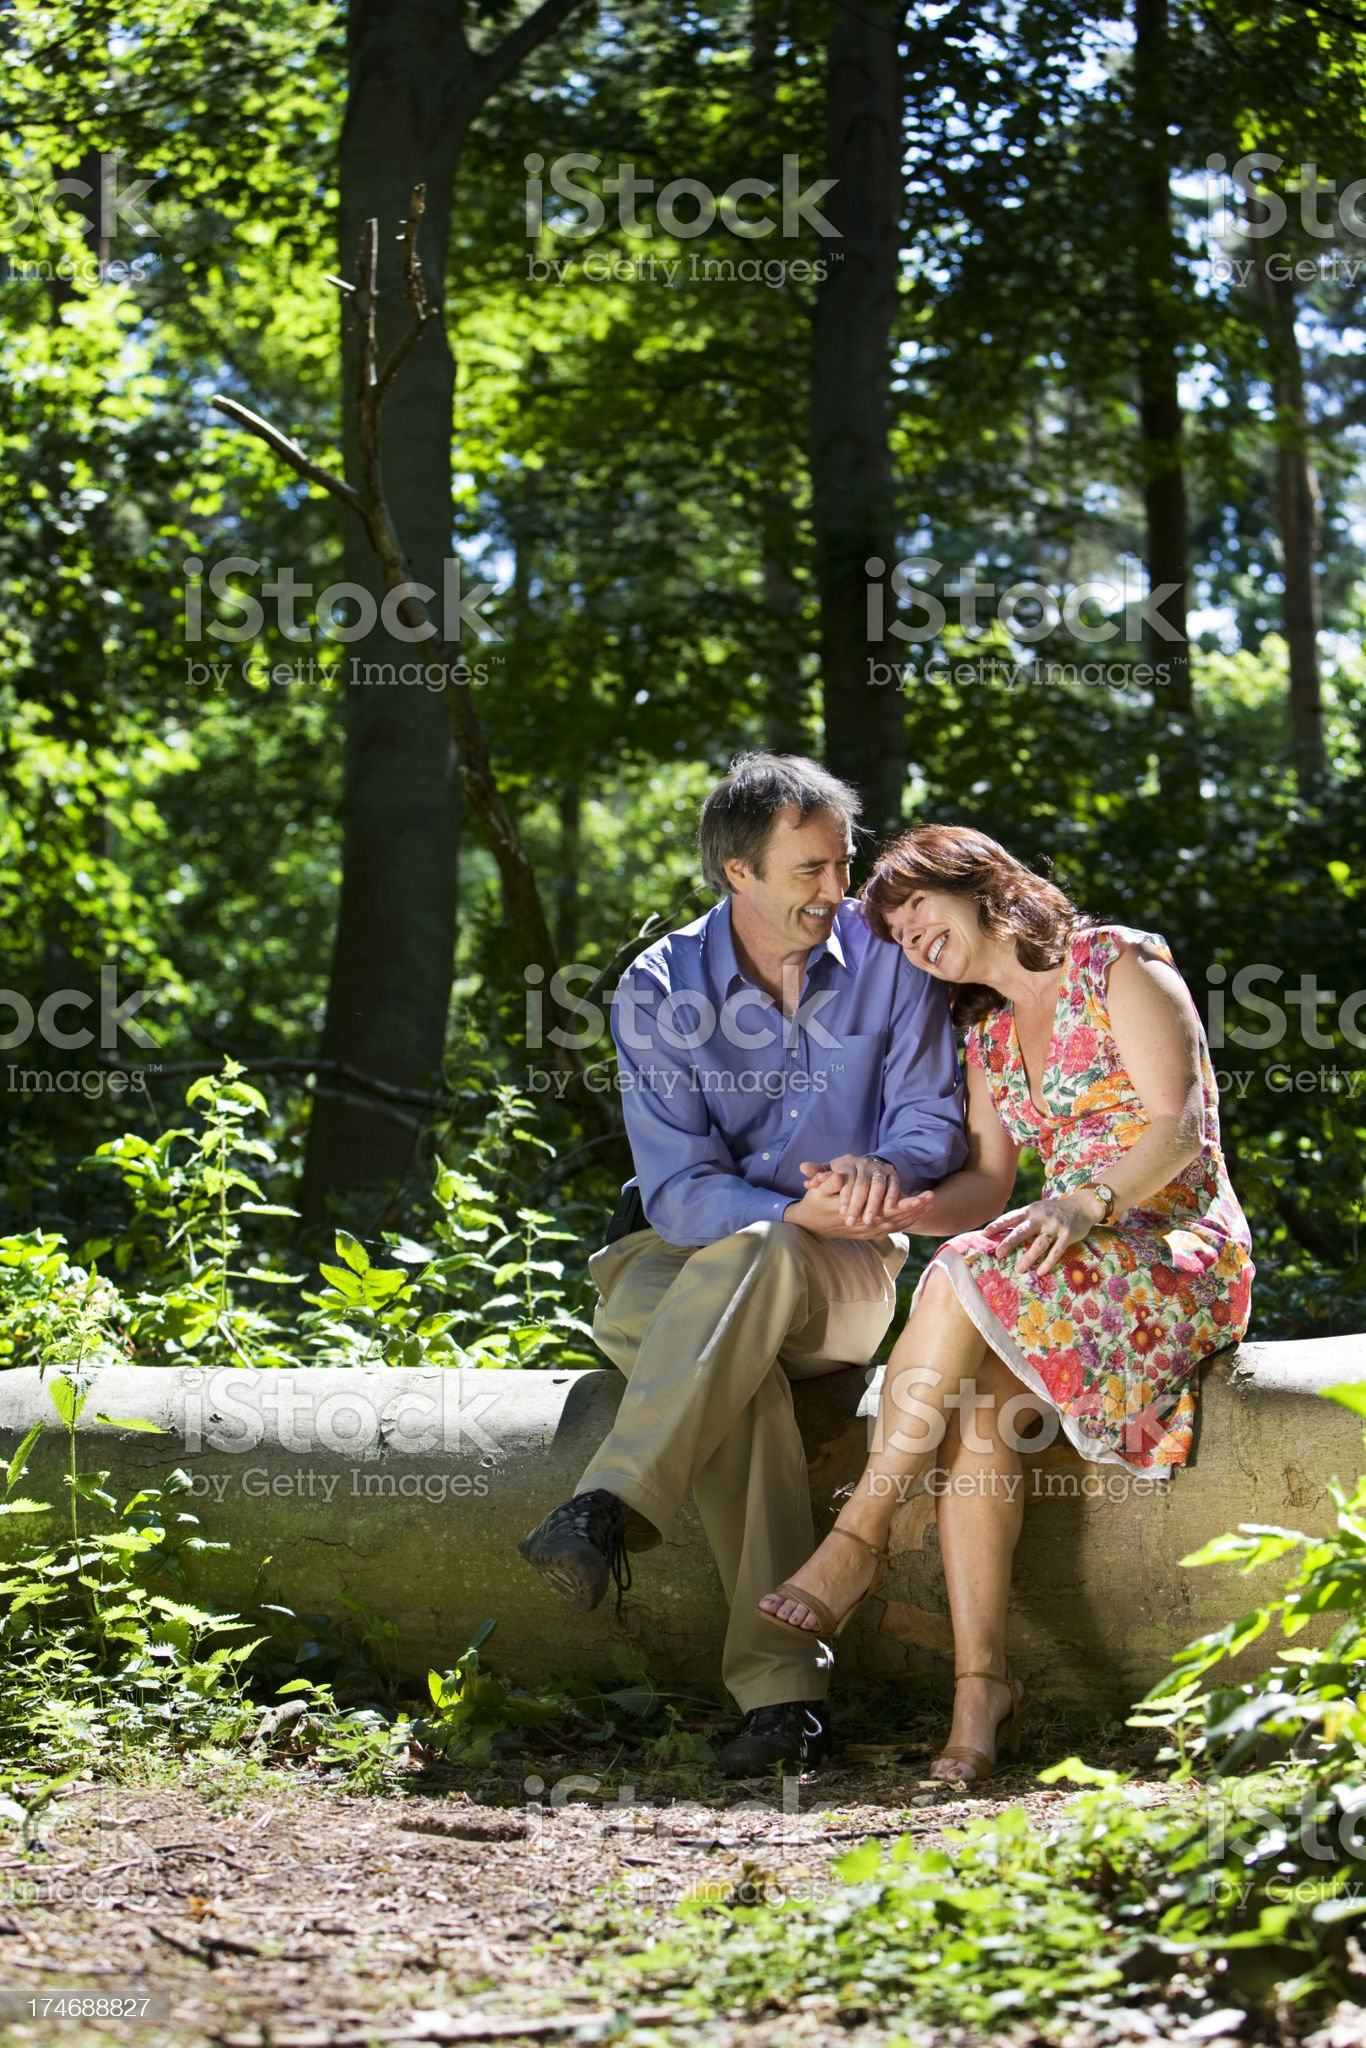 early retirement: life begins at 40 royalty-free stock photo